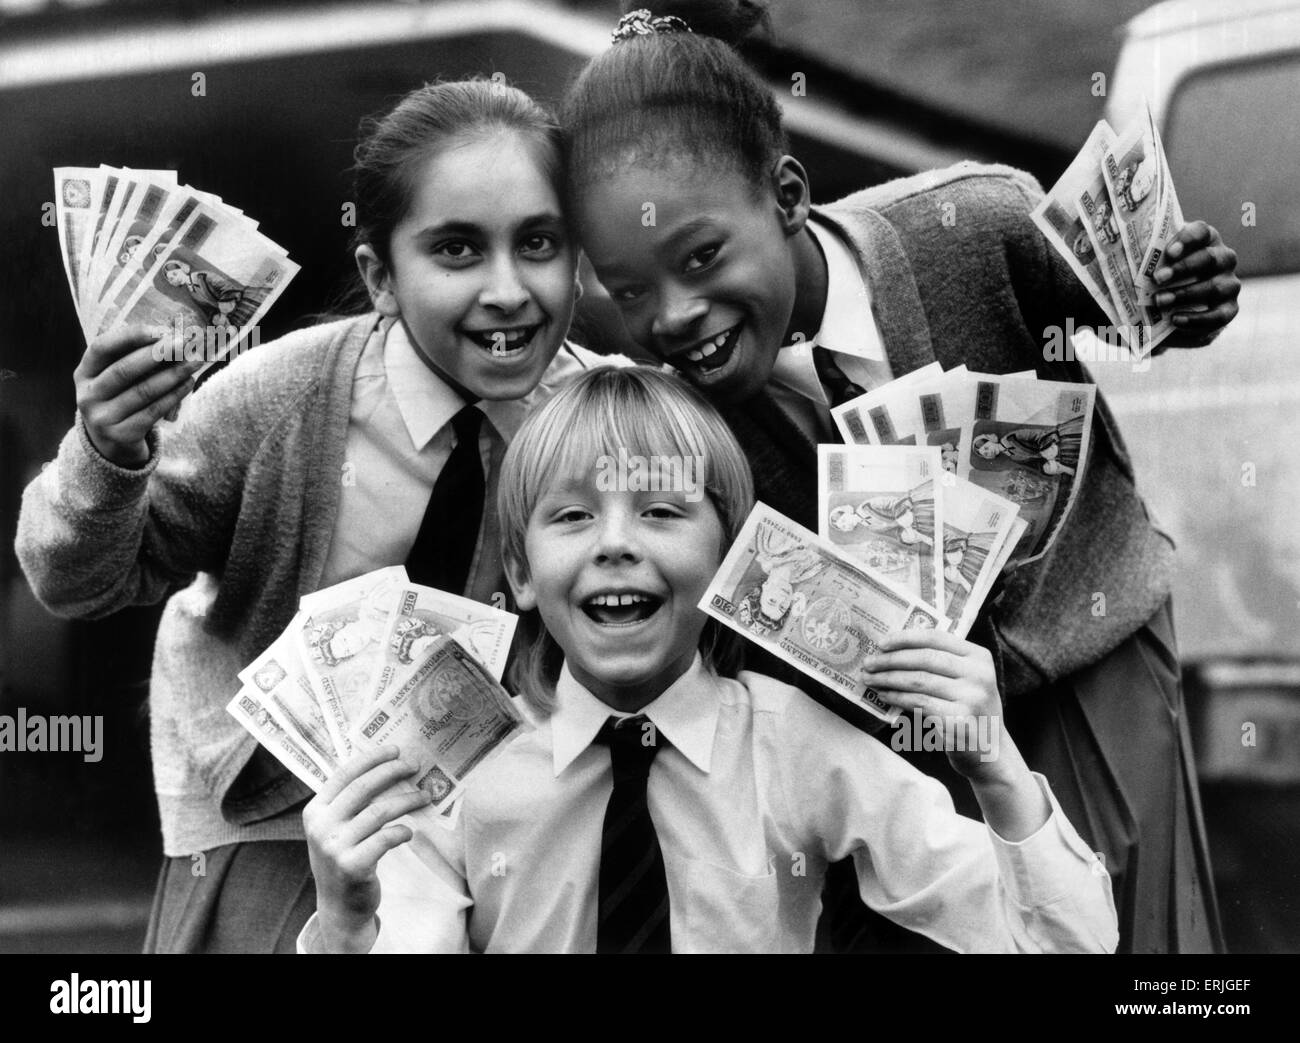 Grestone Birmingham 1990 Black And White Stock Photos And Images Alamy